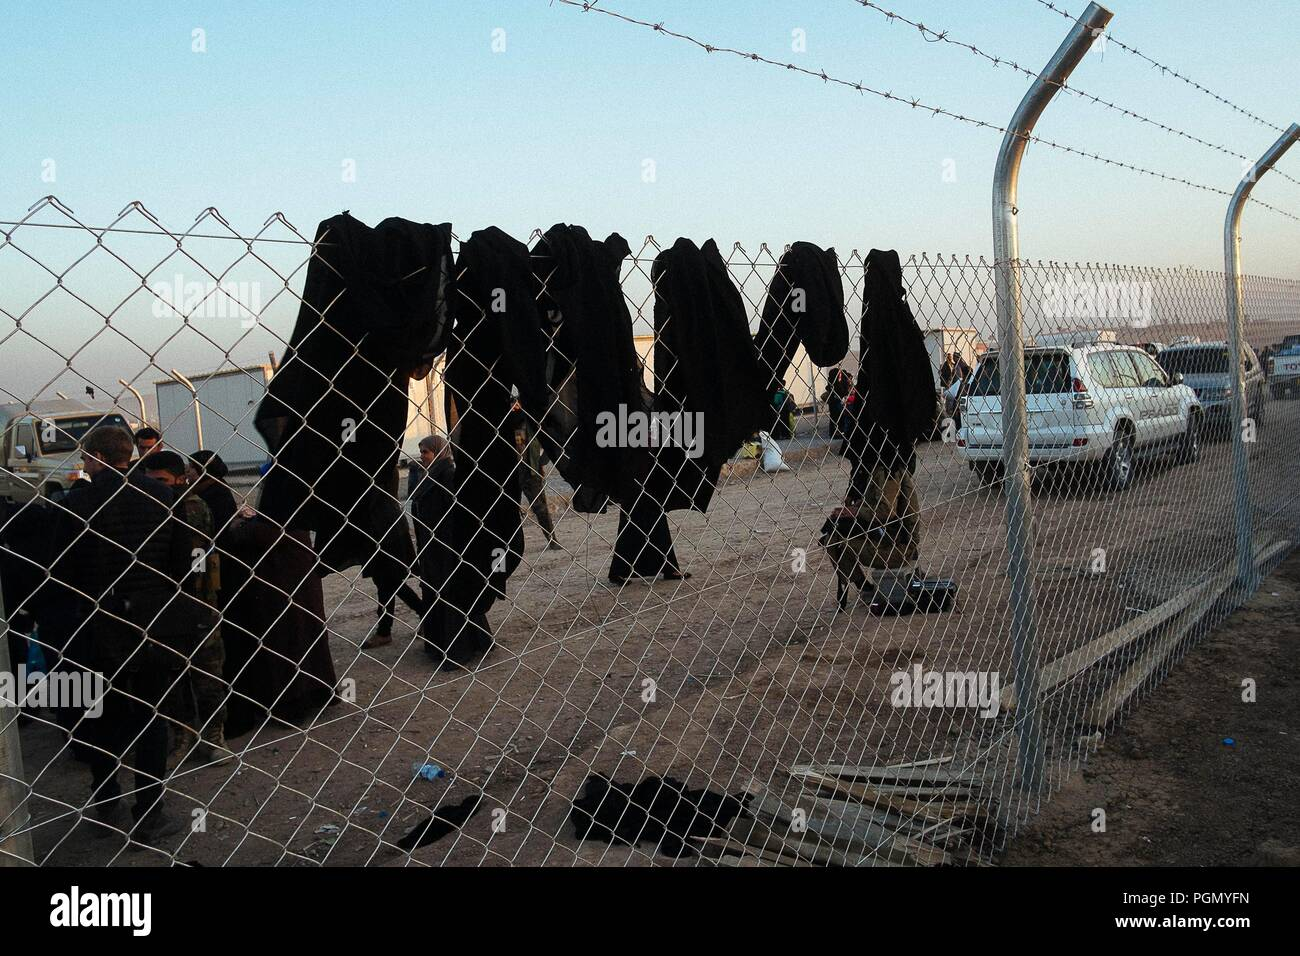 A refugee camp in Iraq, where live people escaped from ISIS. Niqabs abandoned by the women forced to bring under the Caliphate. Stock Photo